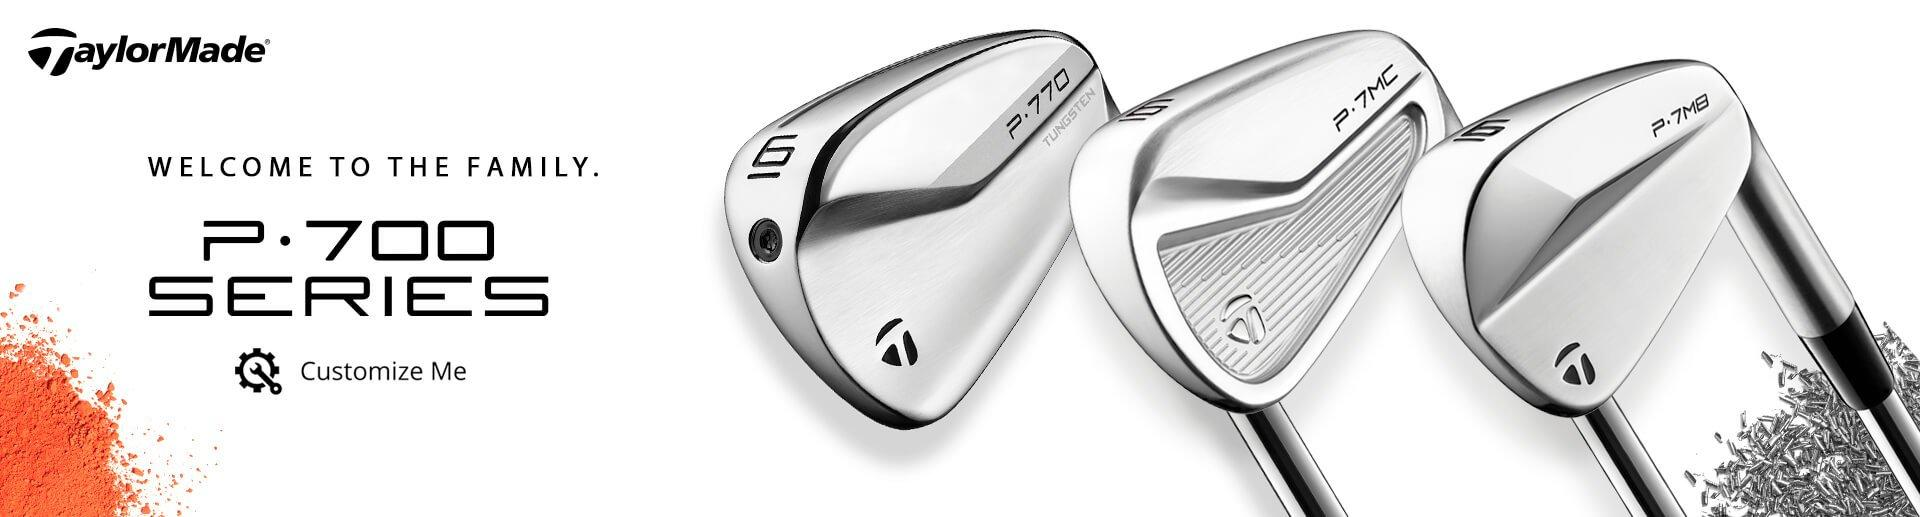 NEW TaylorMade P700 Series Irons